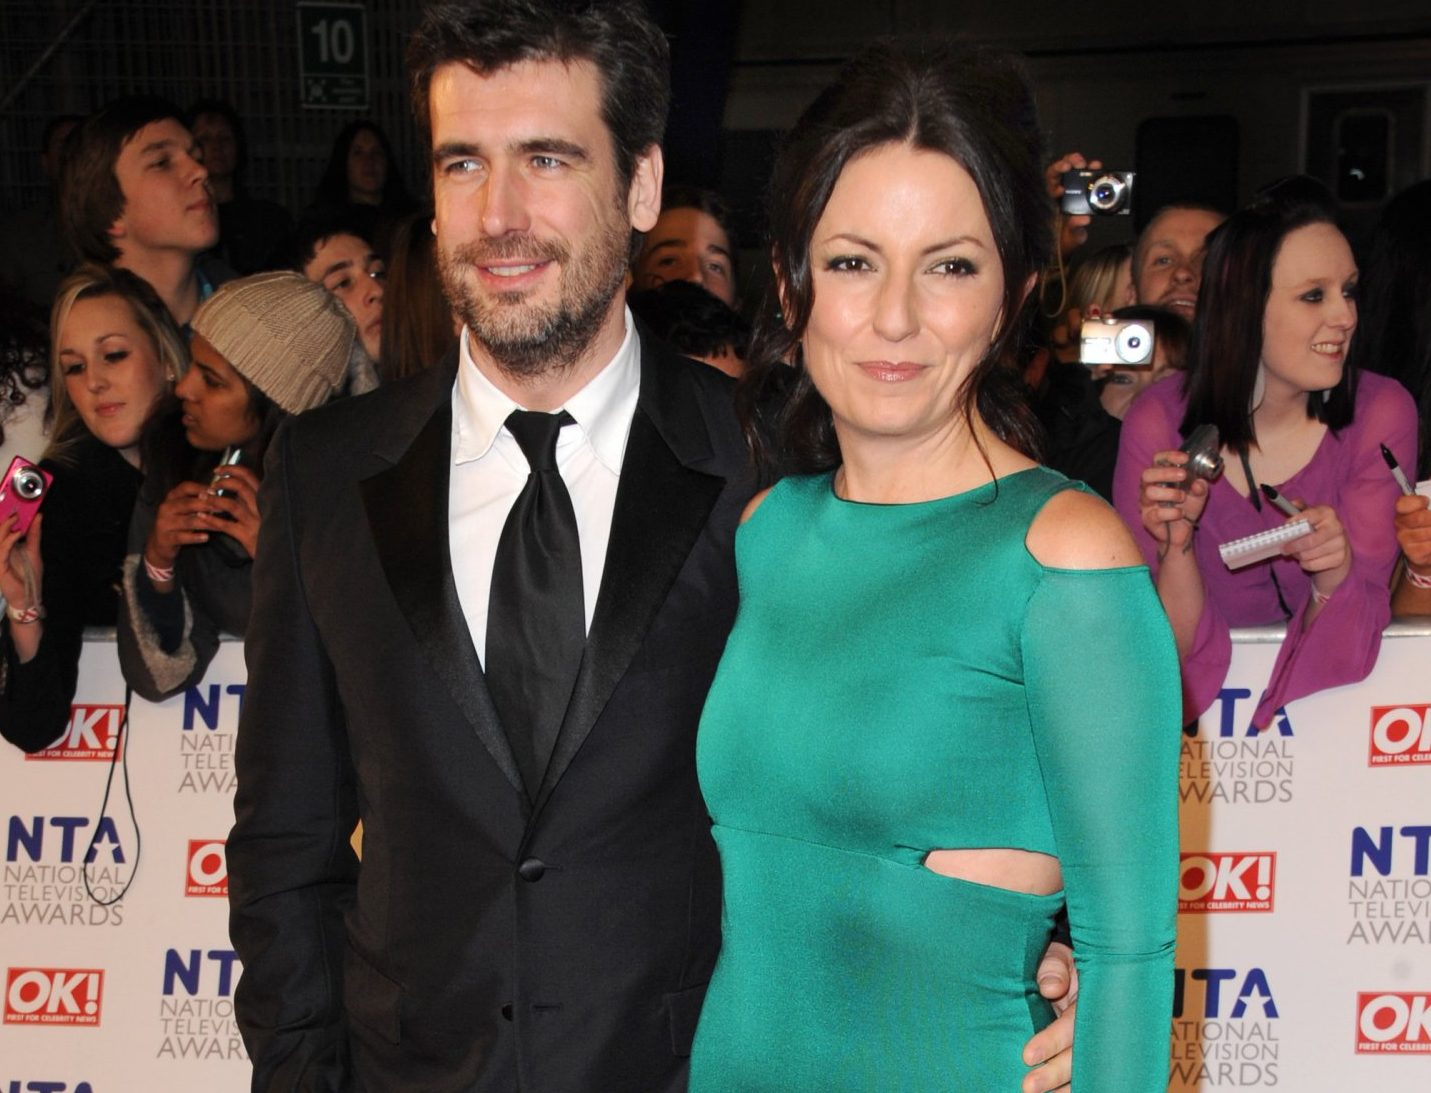 Davina McCall 'spends Christmas with estranged husband Matthew Robinson' weeks after announcing split